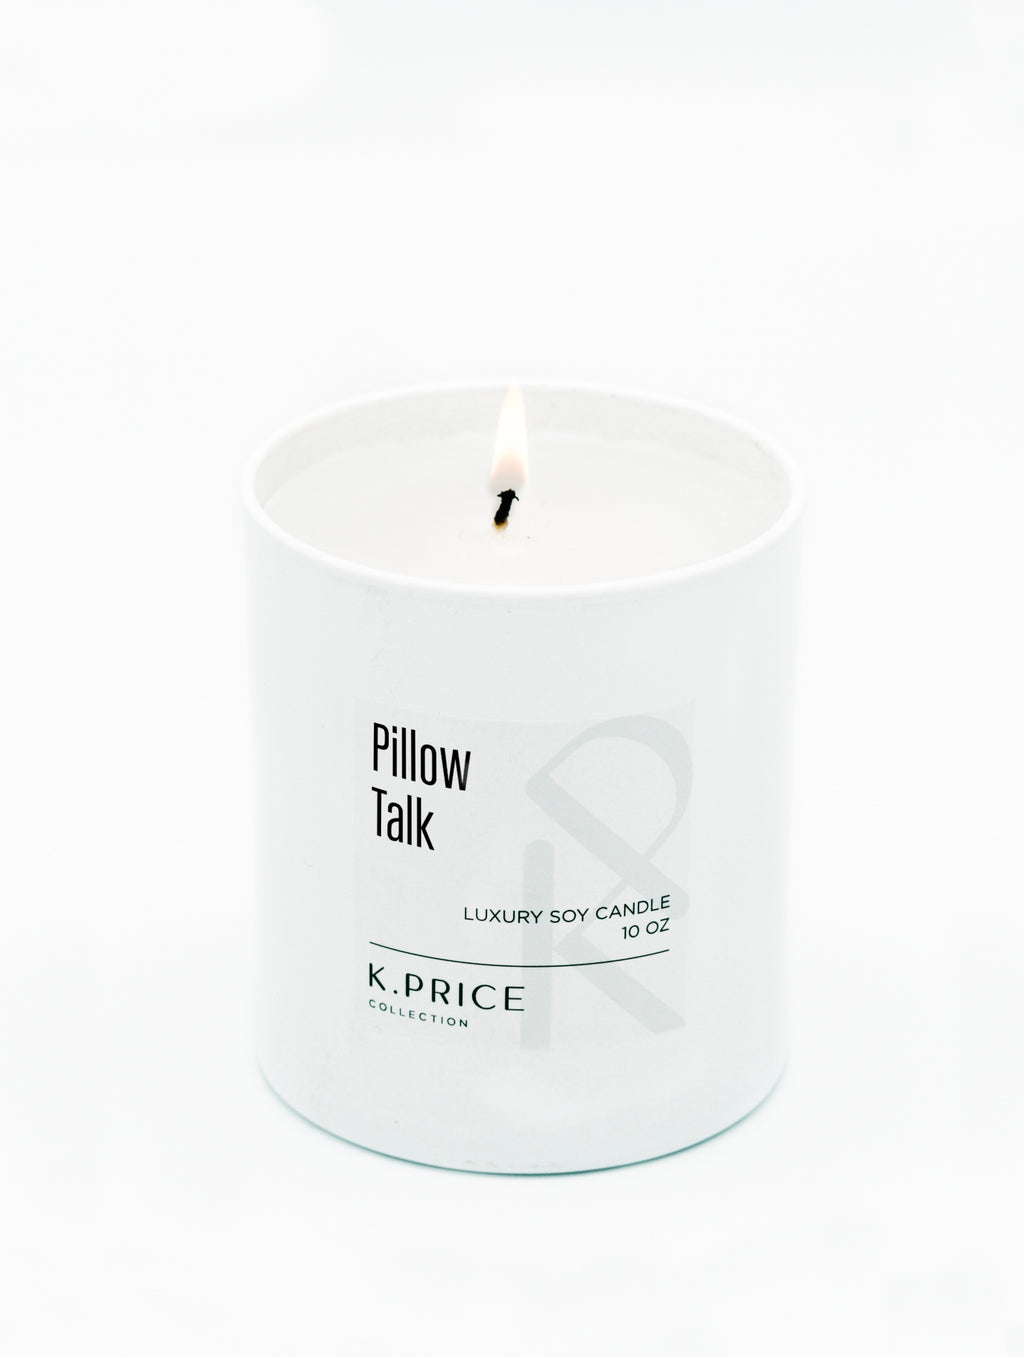 Pillow Talk - 10oz Soy Candle